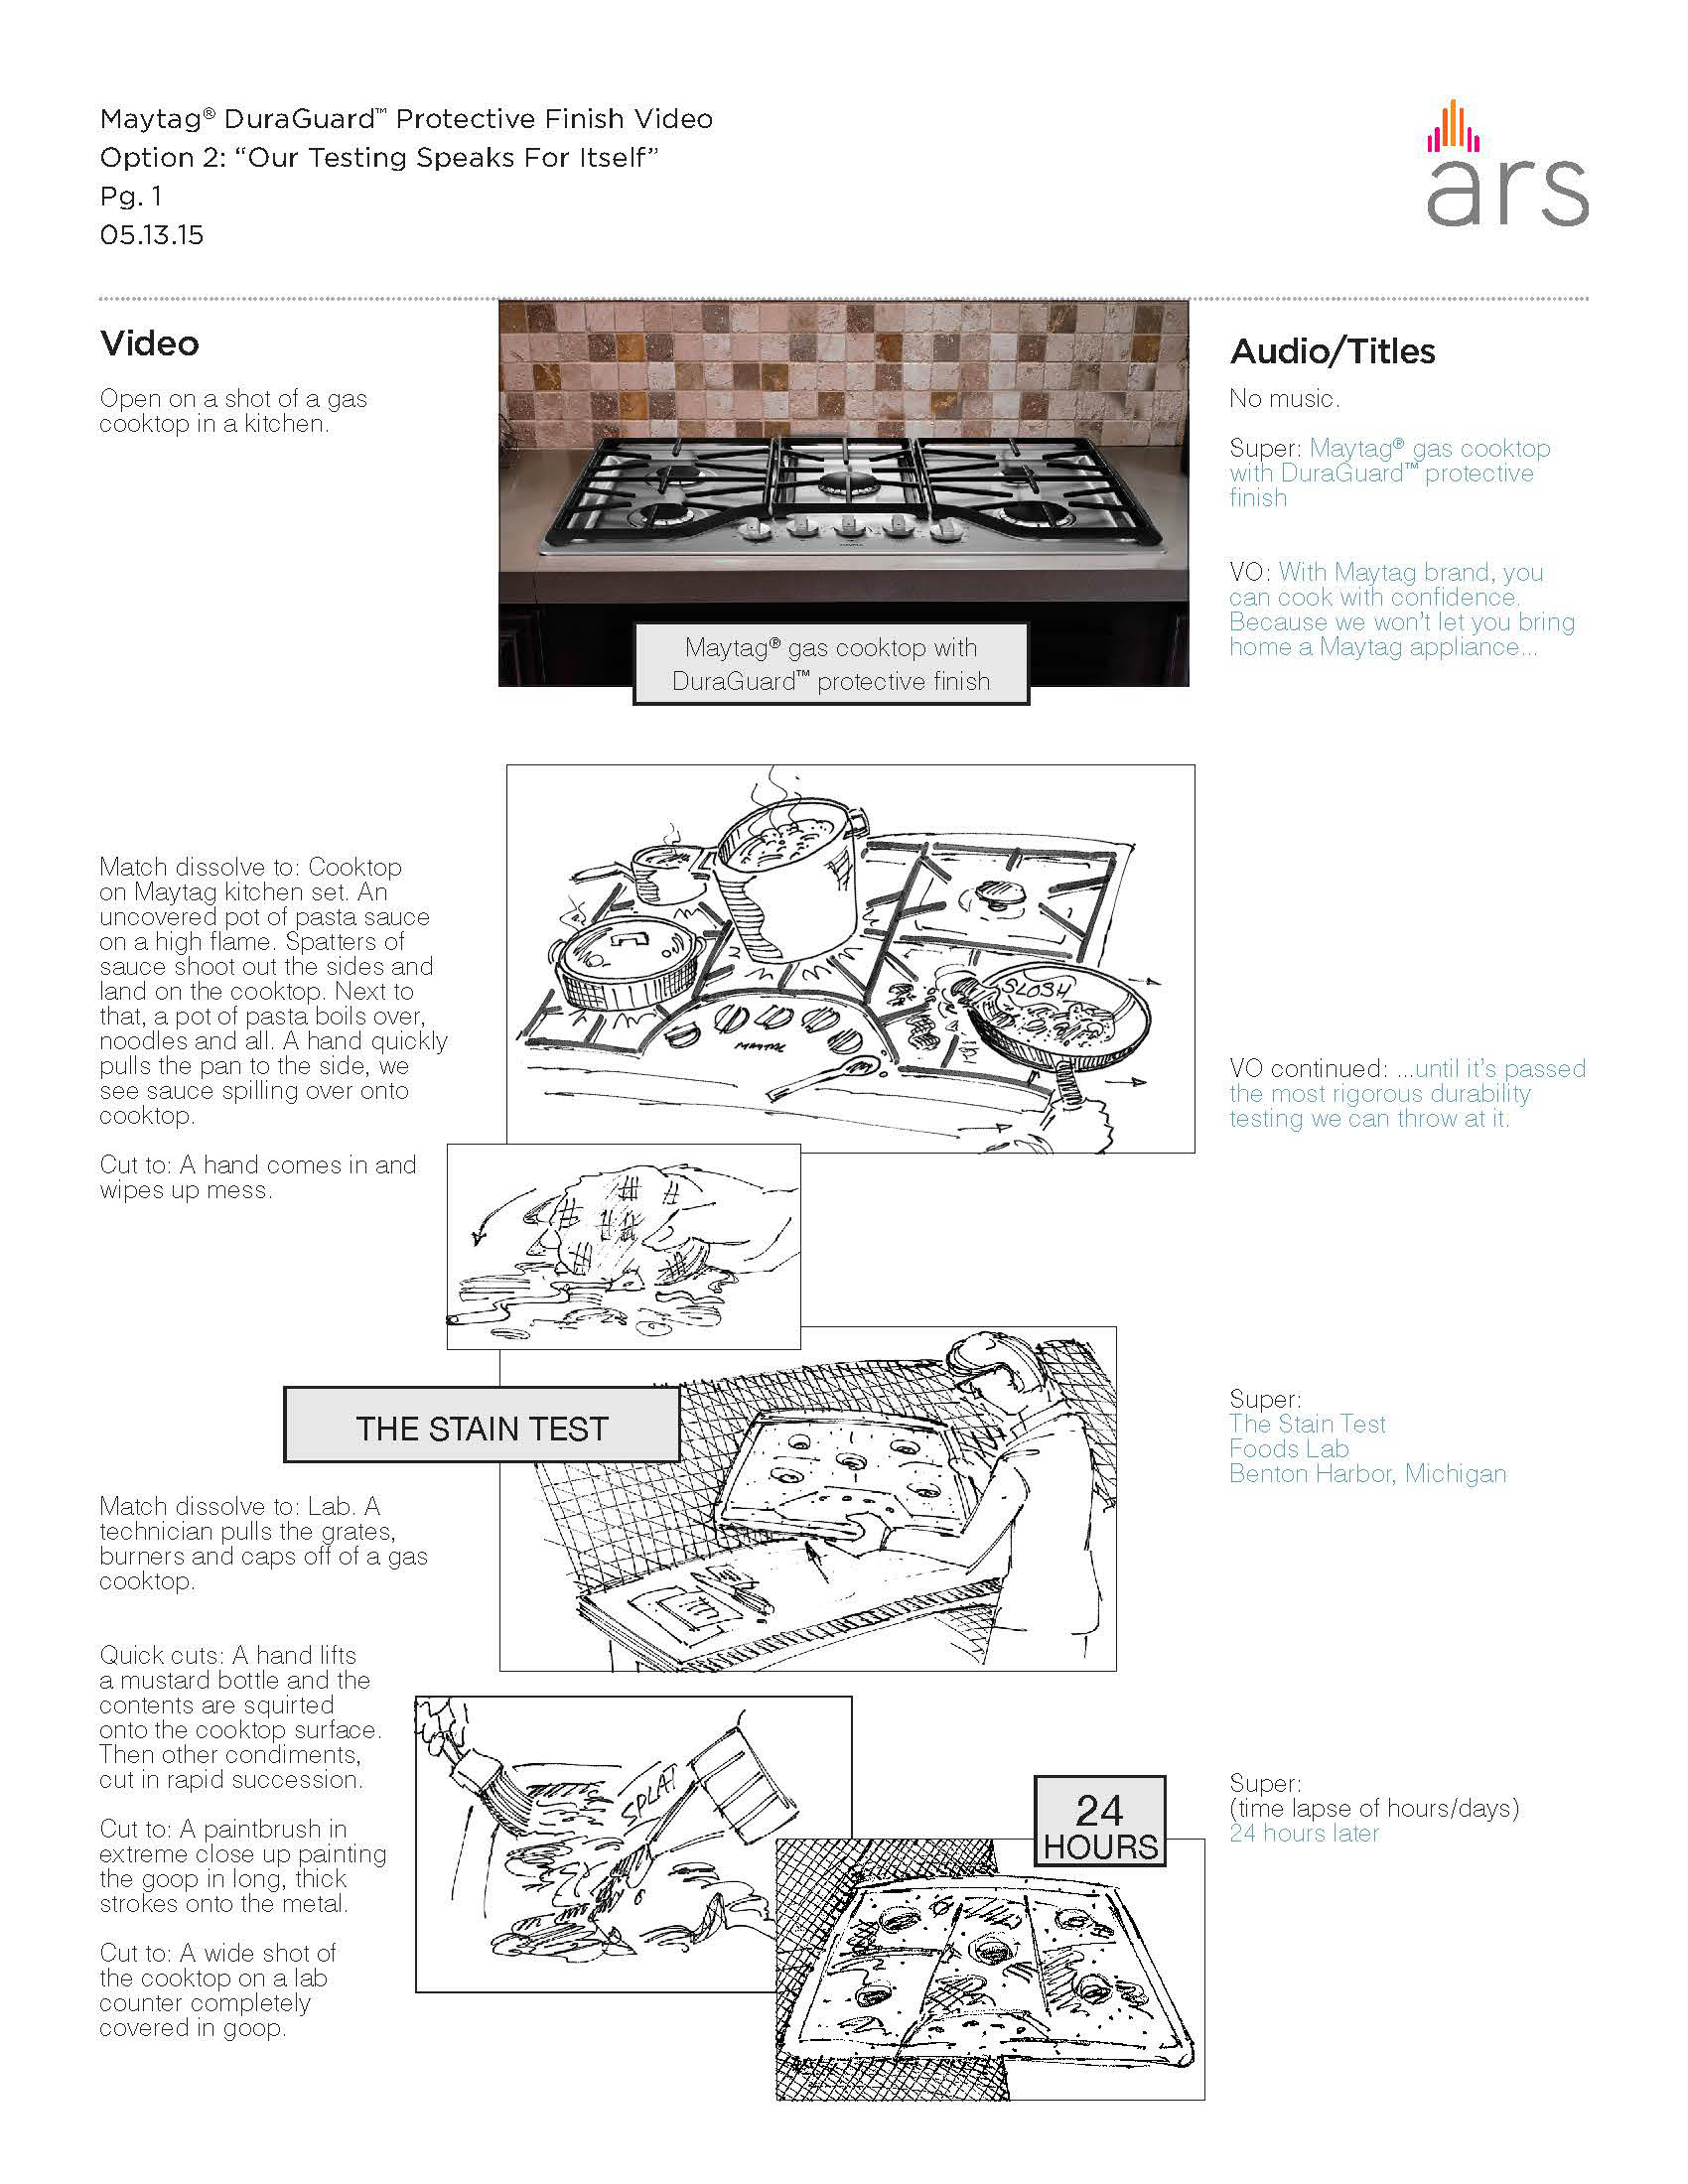 cean burgeson script and storyboard writing